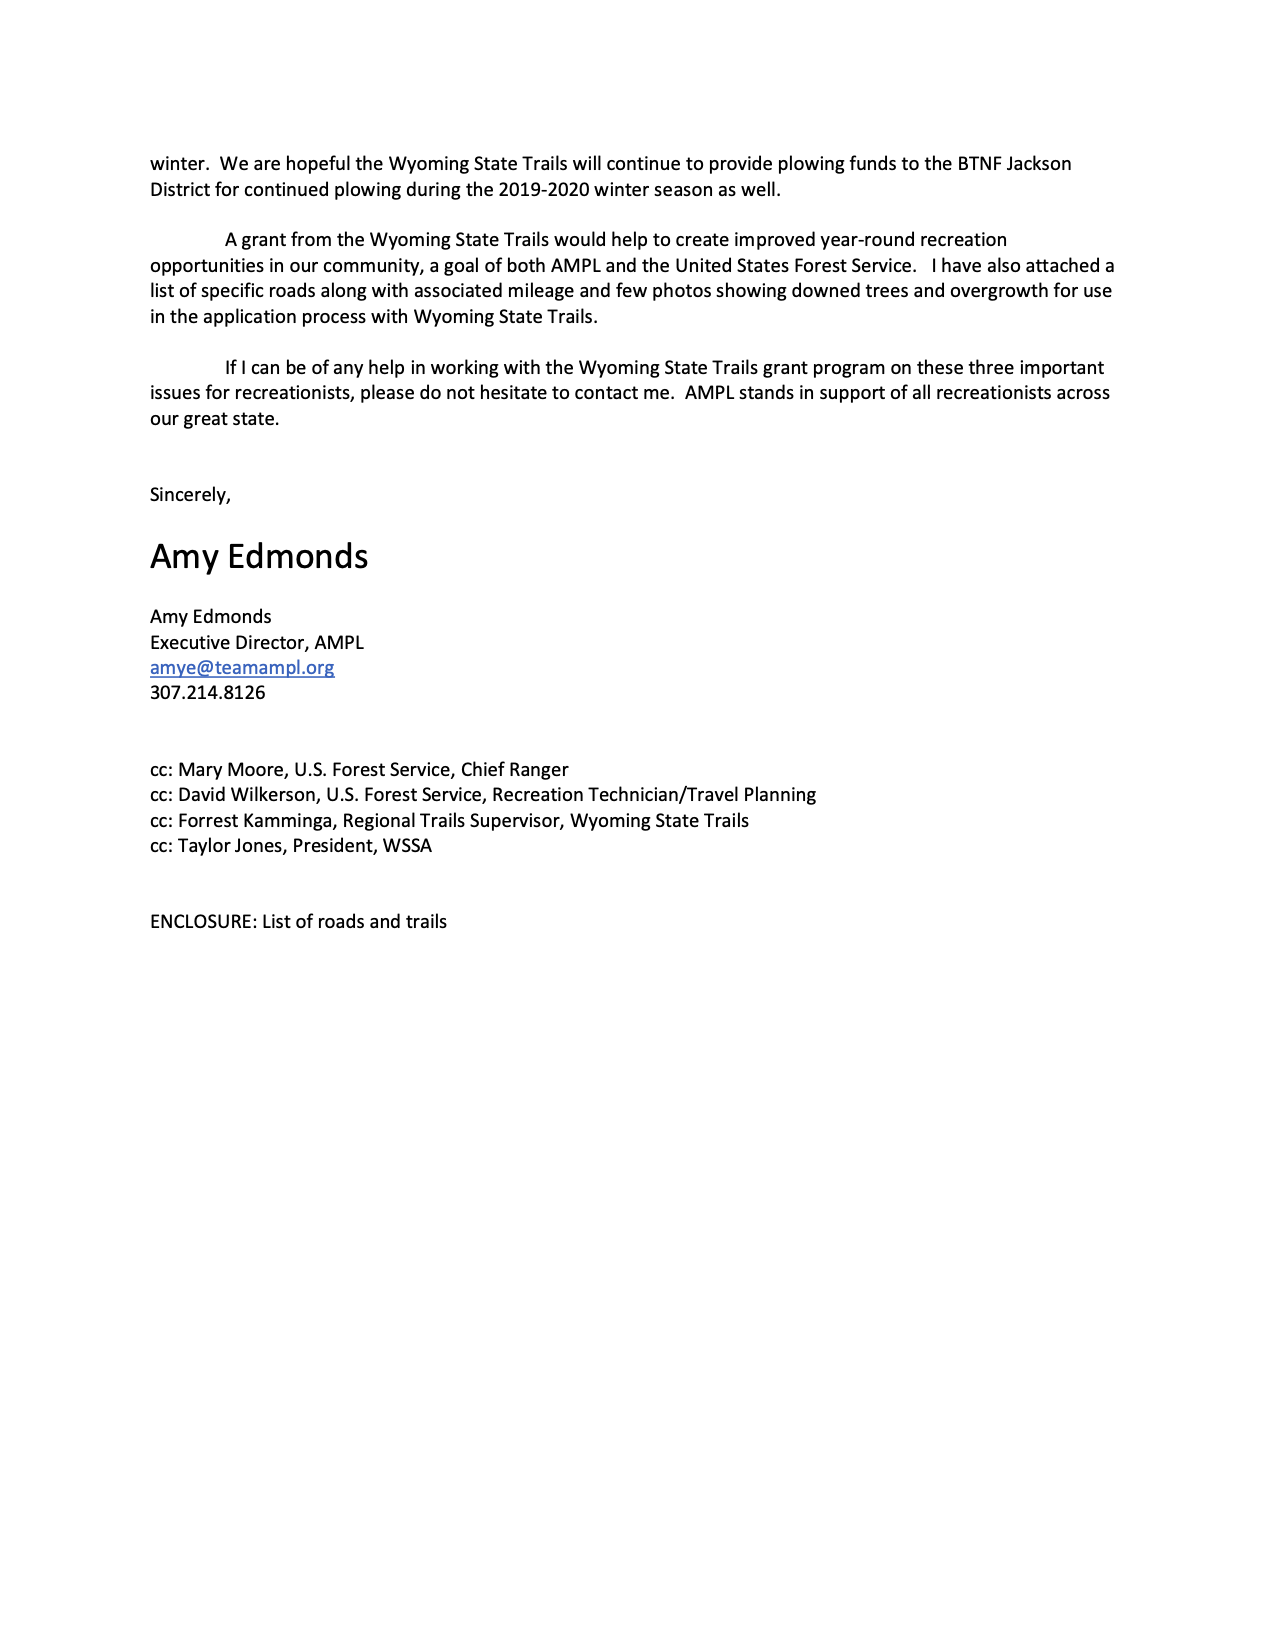 AMPL letter to BTNF Jackson requesting grant items 9.12.19PG2.png